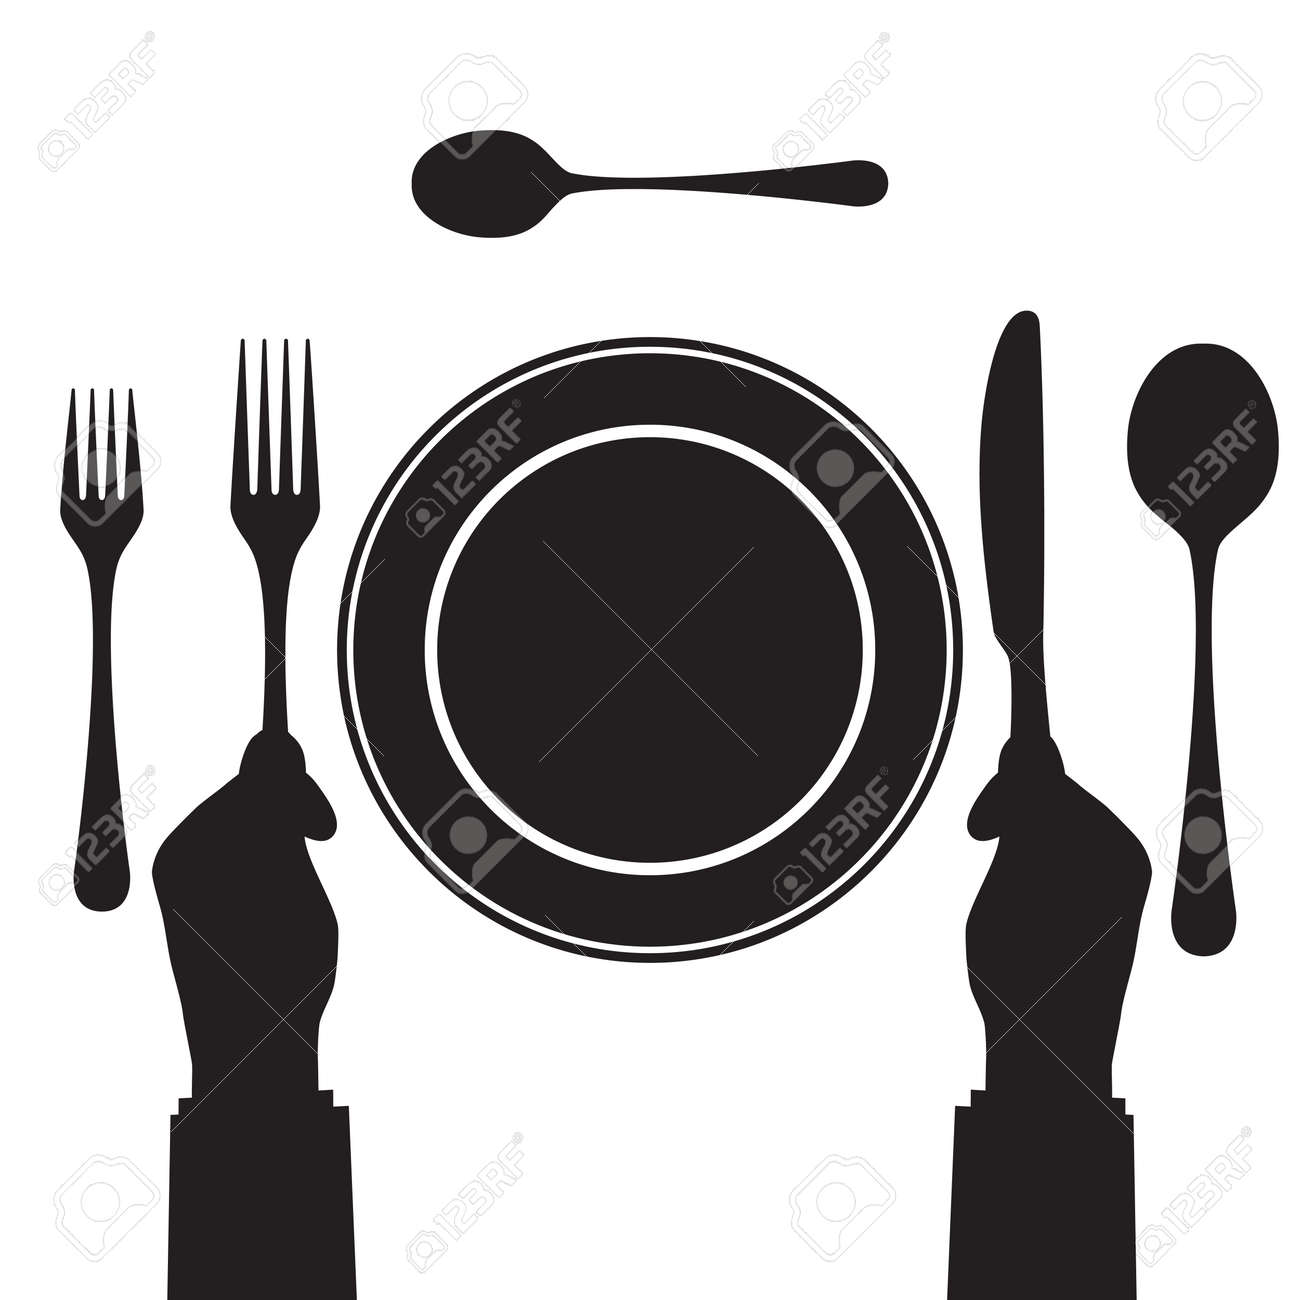 Black silhouette of a hand with a knife and fork. Tableware. Top view. Elements for design: plate, fork, spoon, knife. - 49773520